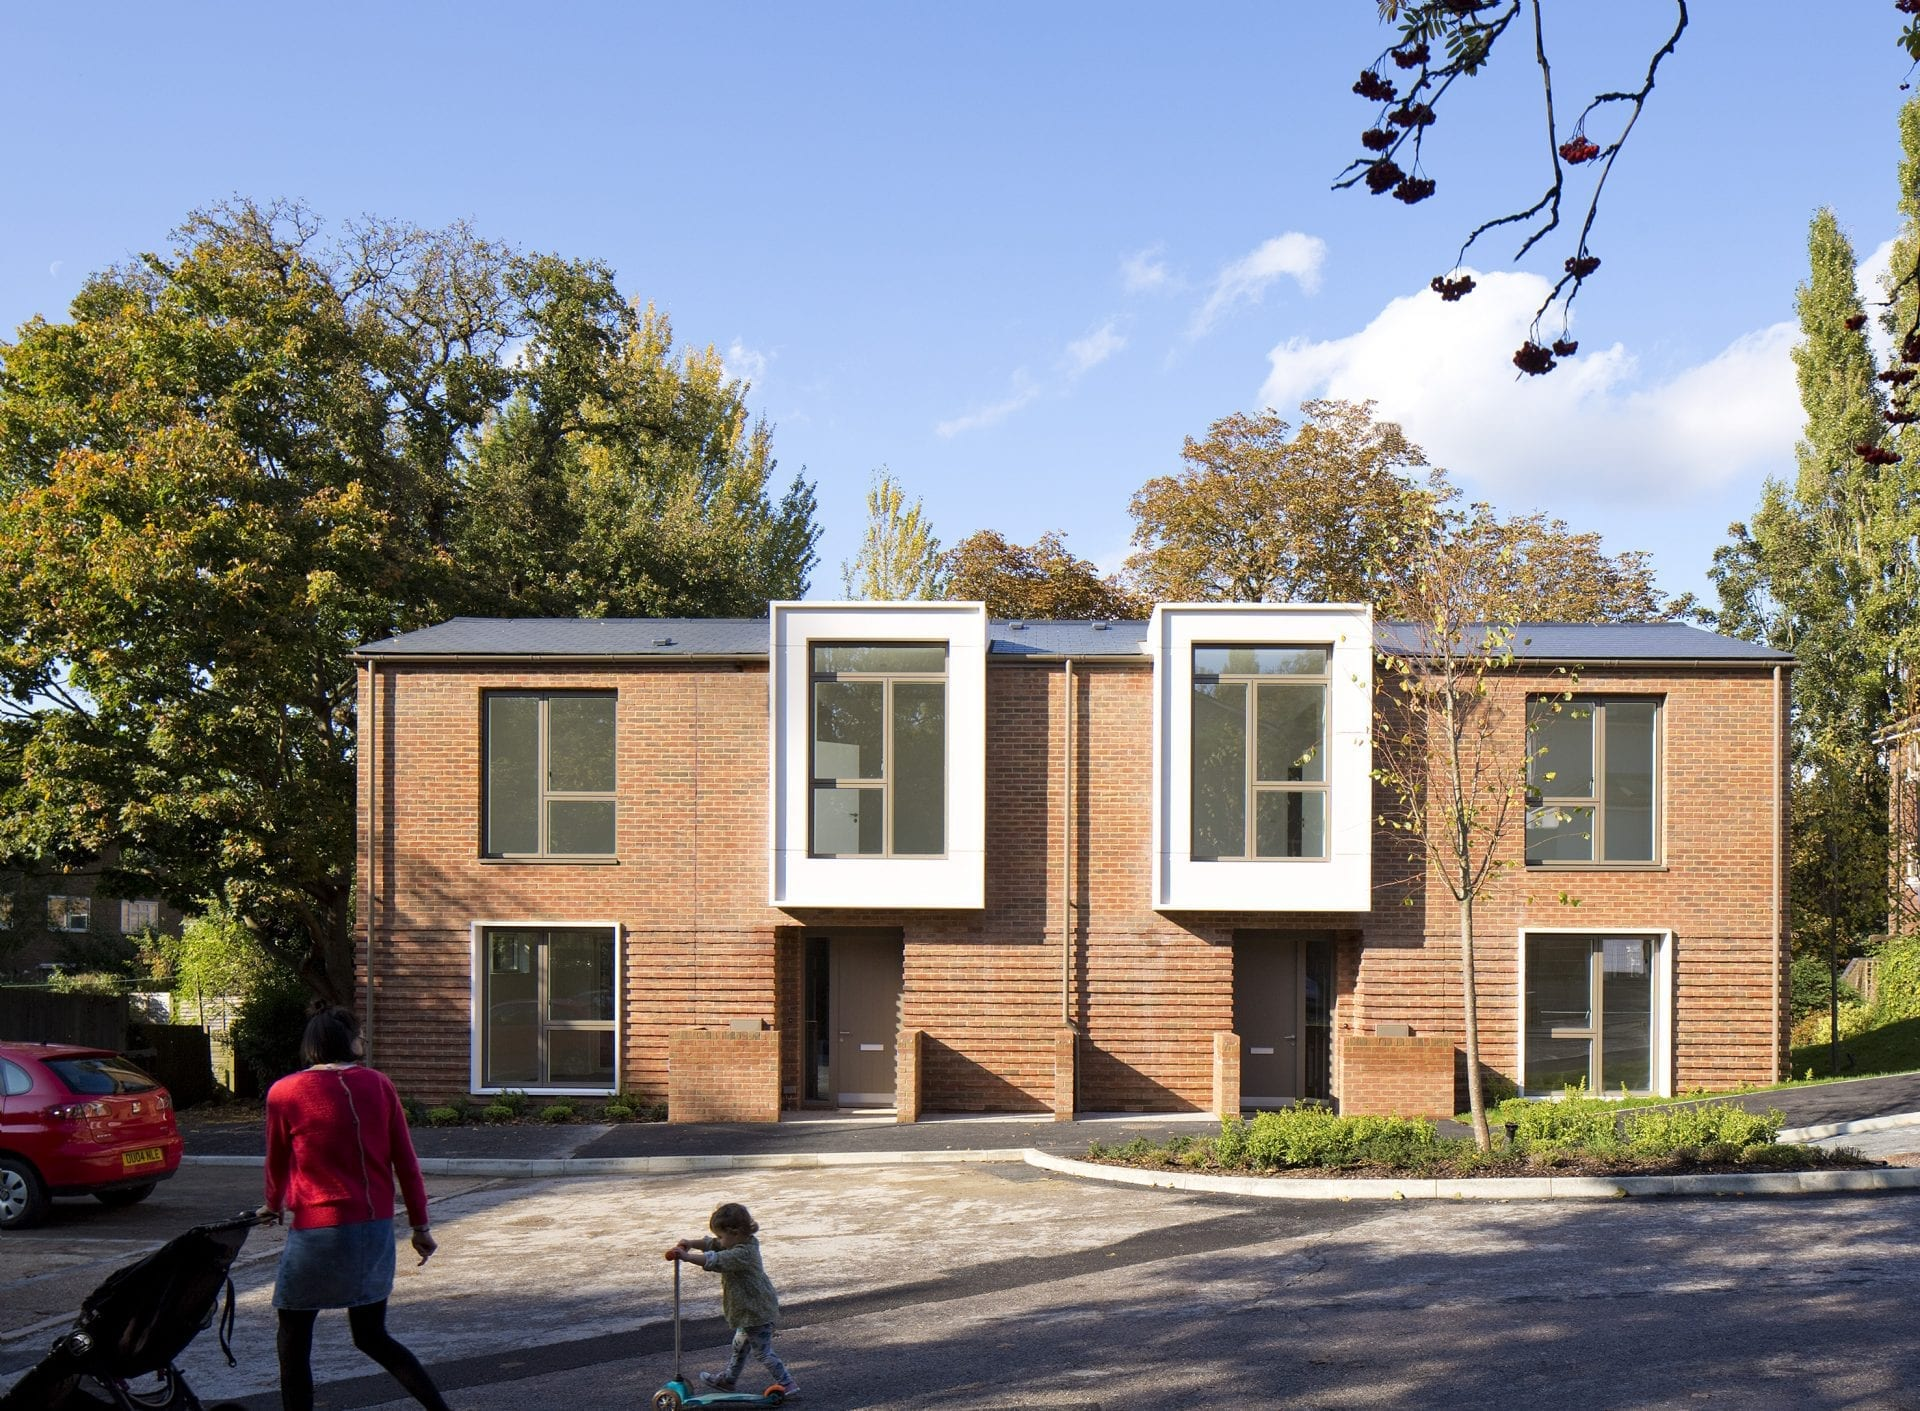 Ravensdale and Rushden by Brick By brick in Croydon